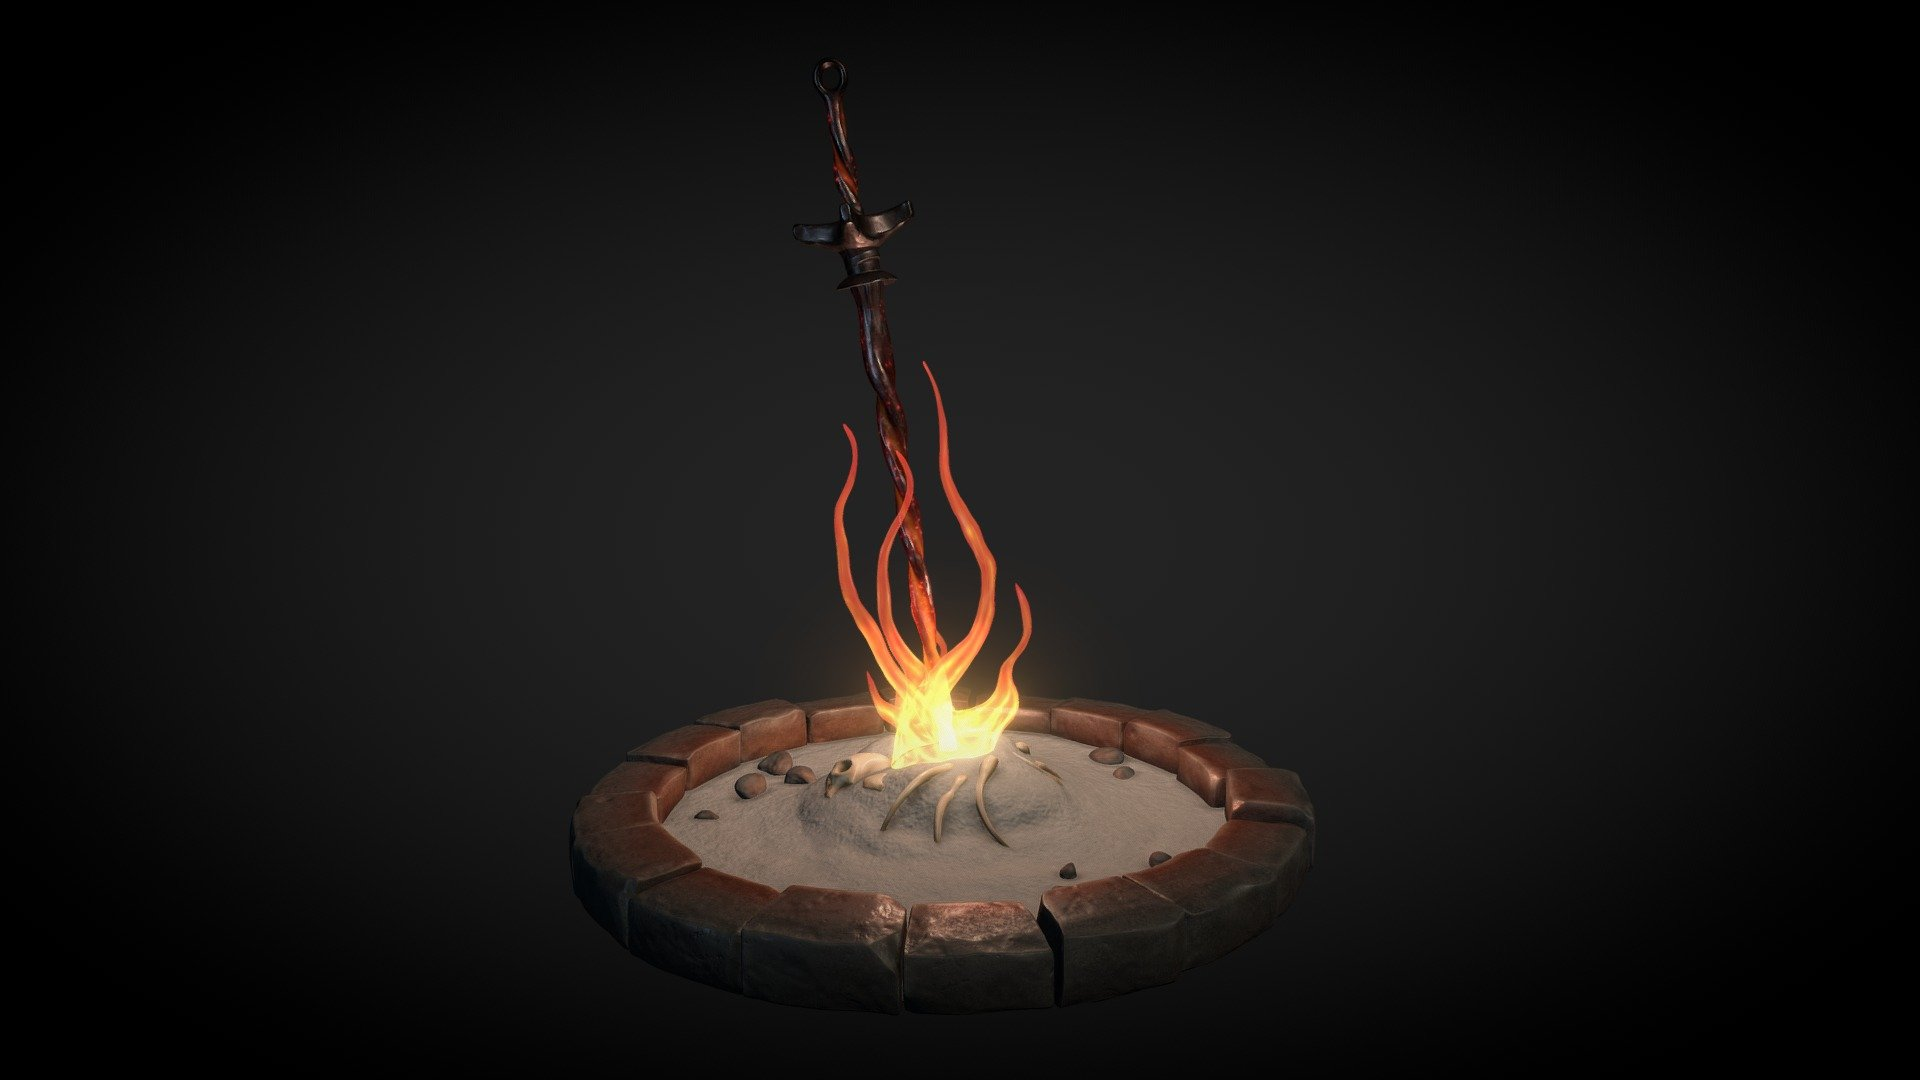 Bonfire Lit 3d Model By Guillaume Biju Duval Guillaume Biju